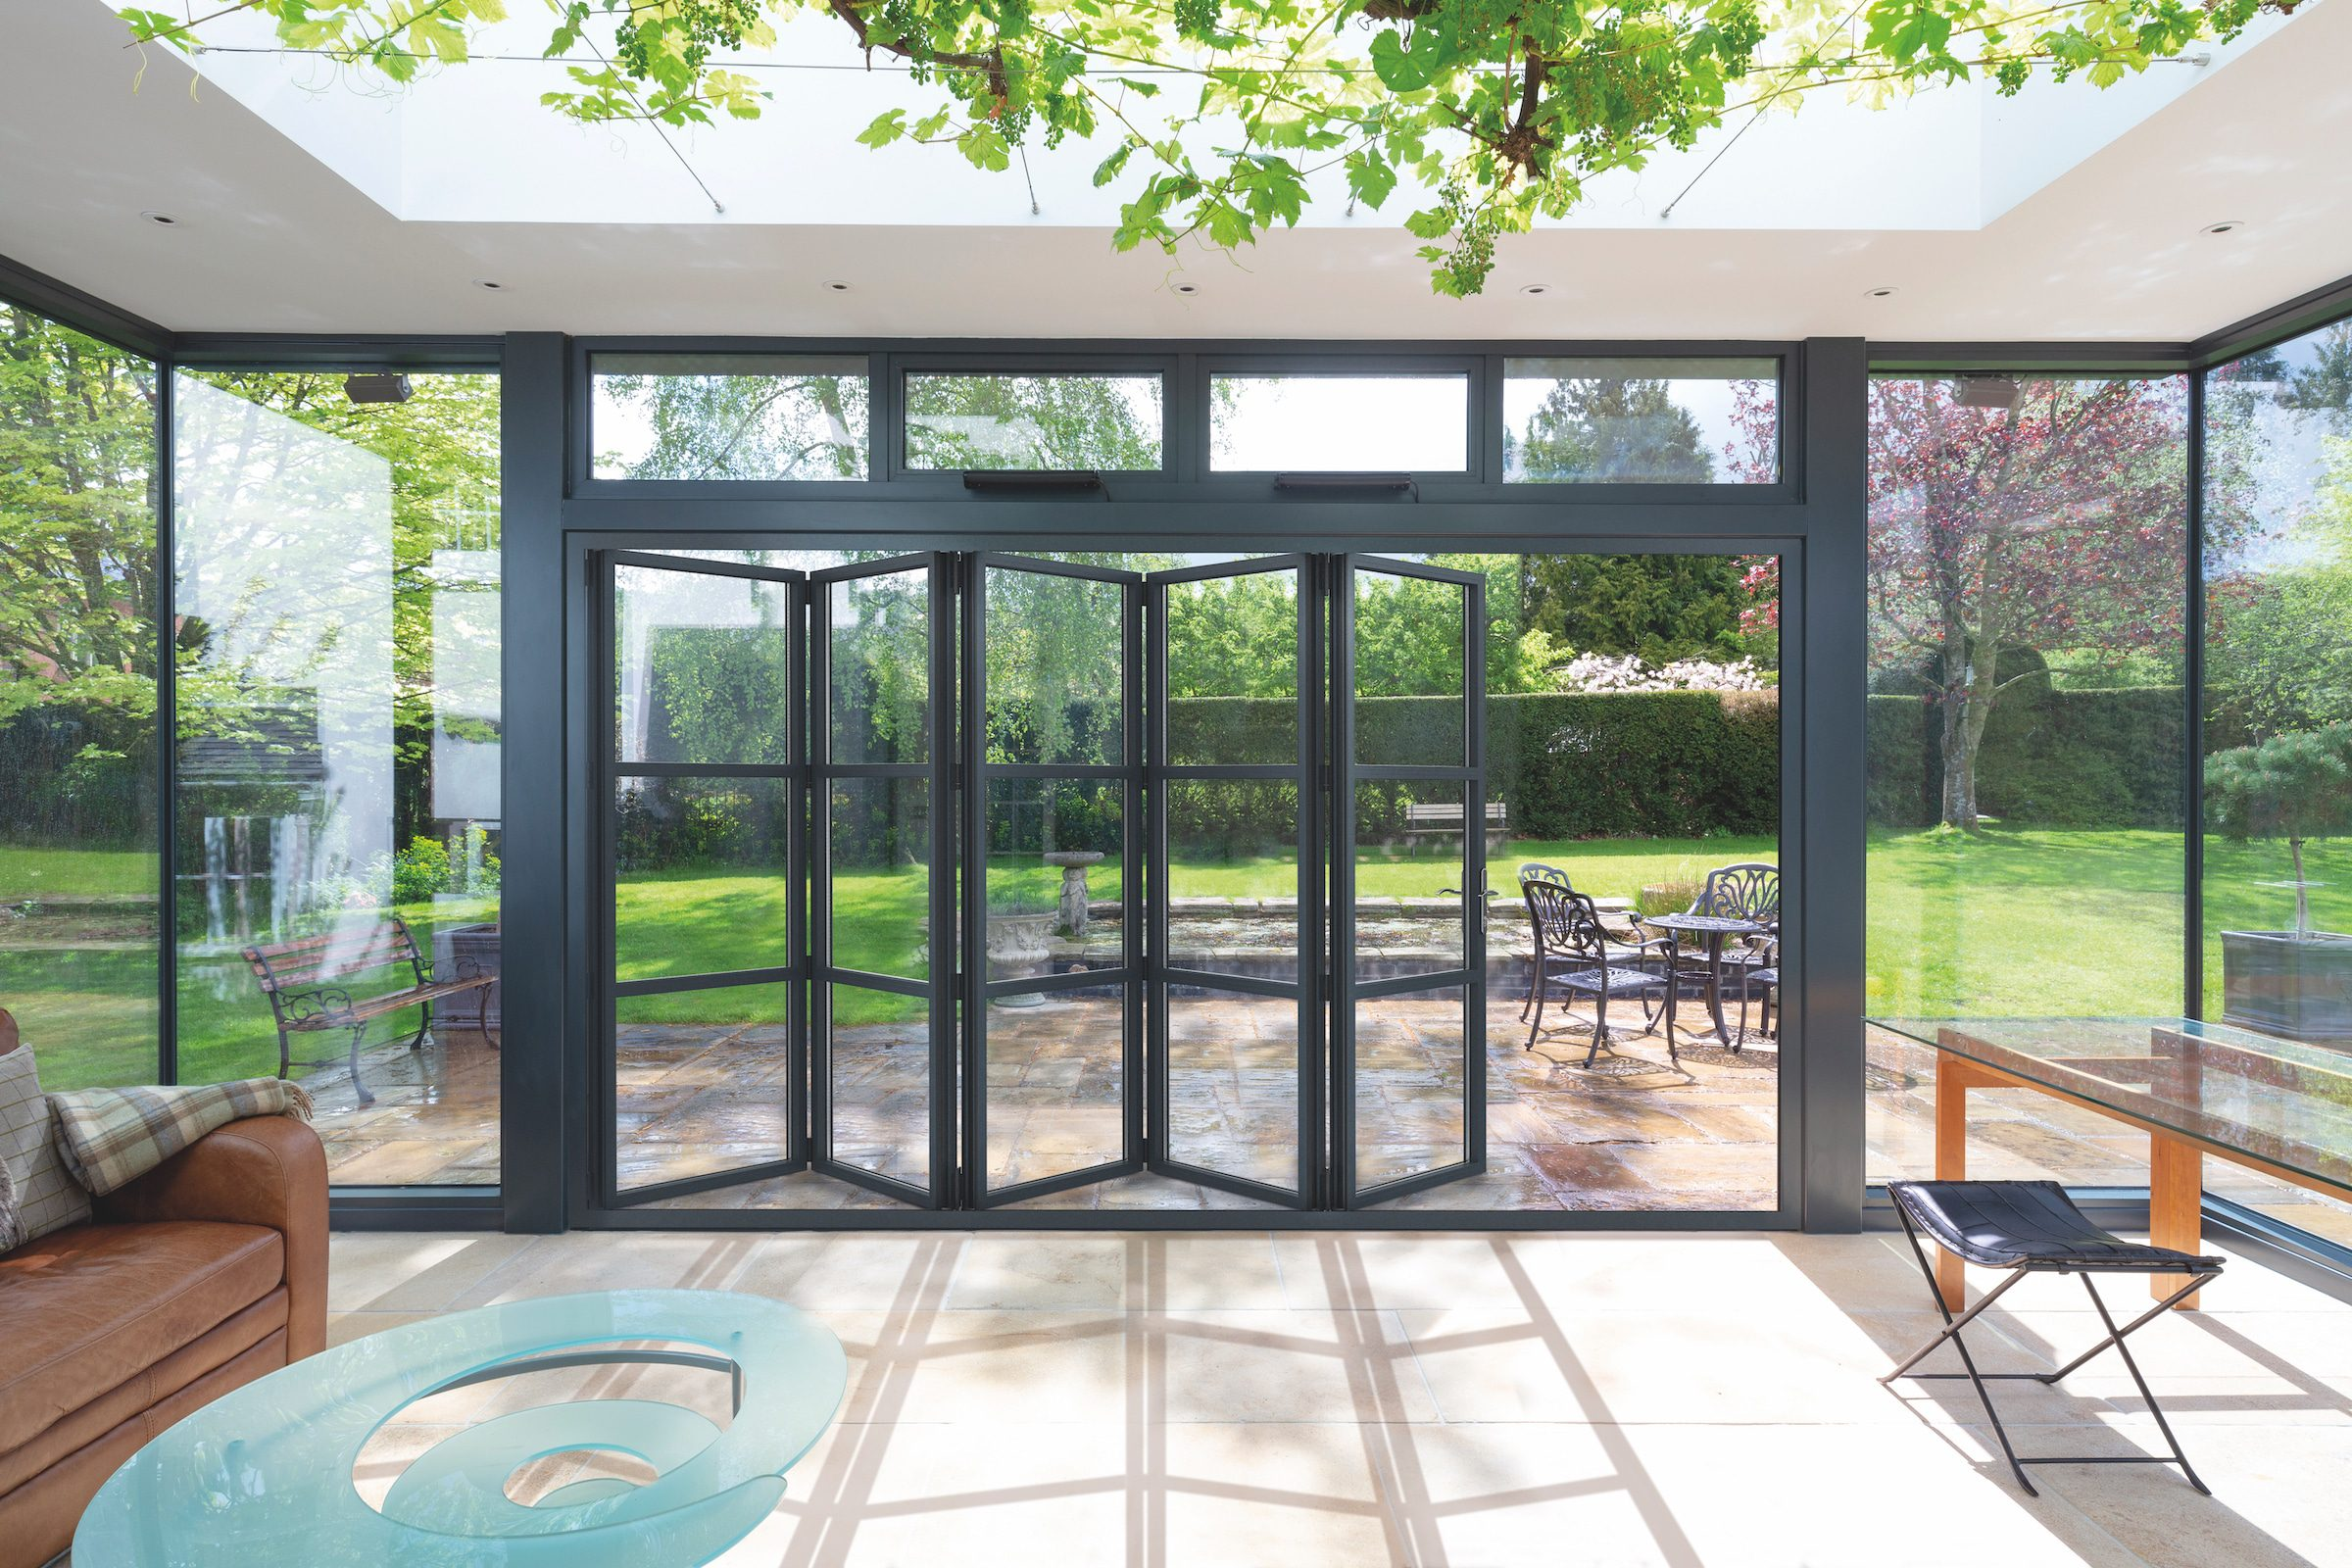 Visofold 6000 steel-look bifolding doors in a new extension